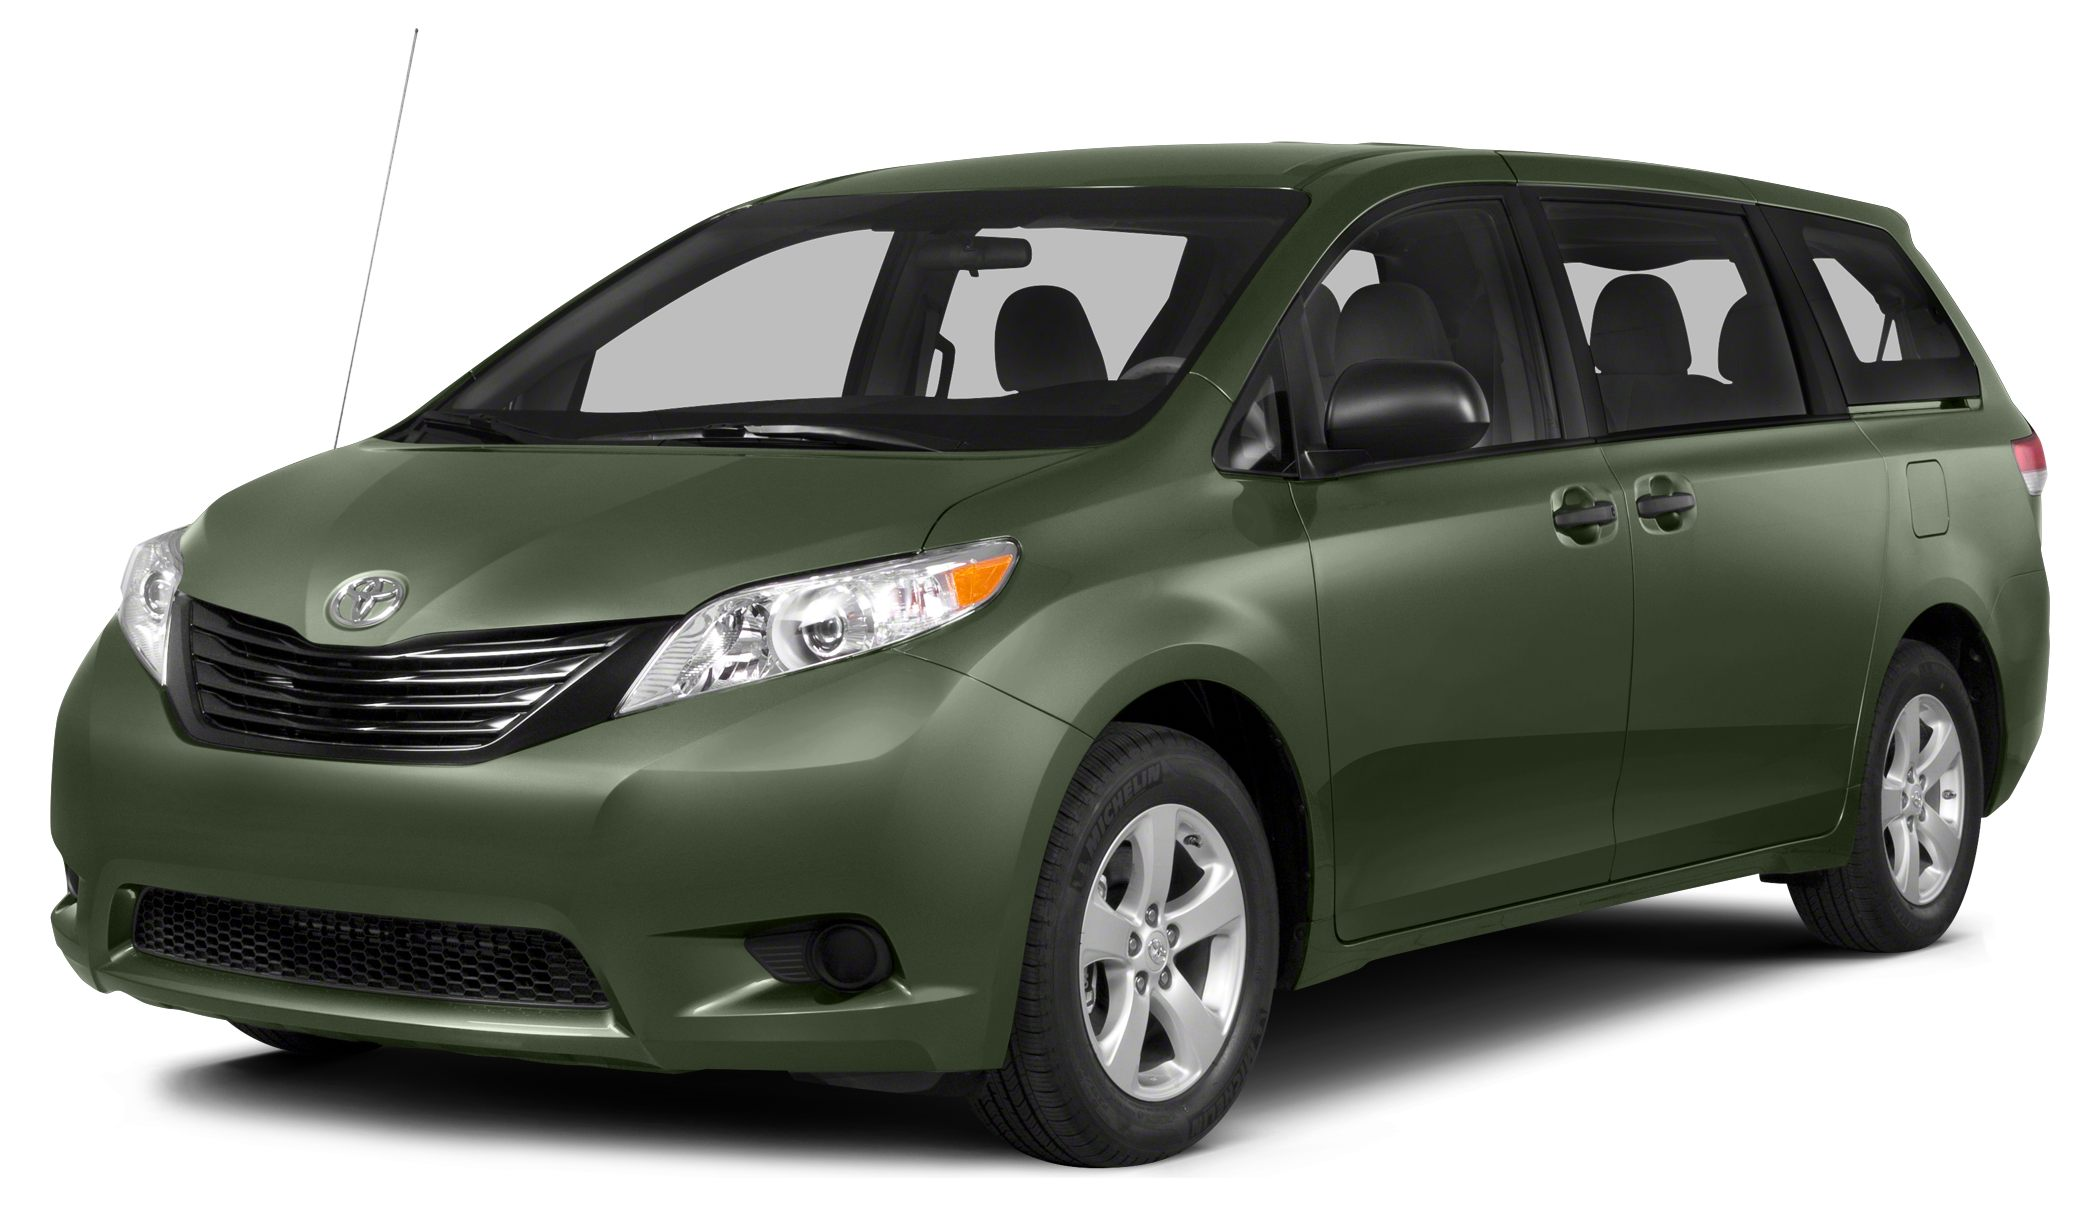 2014 Toyota Sienna XLE 7 Passenger 300 below Kelley Blue Book CARFAX 1-Owner ONLY 30655 Miles